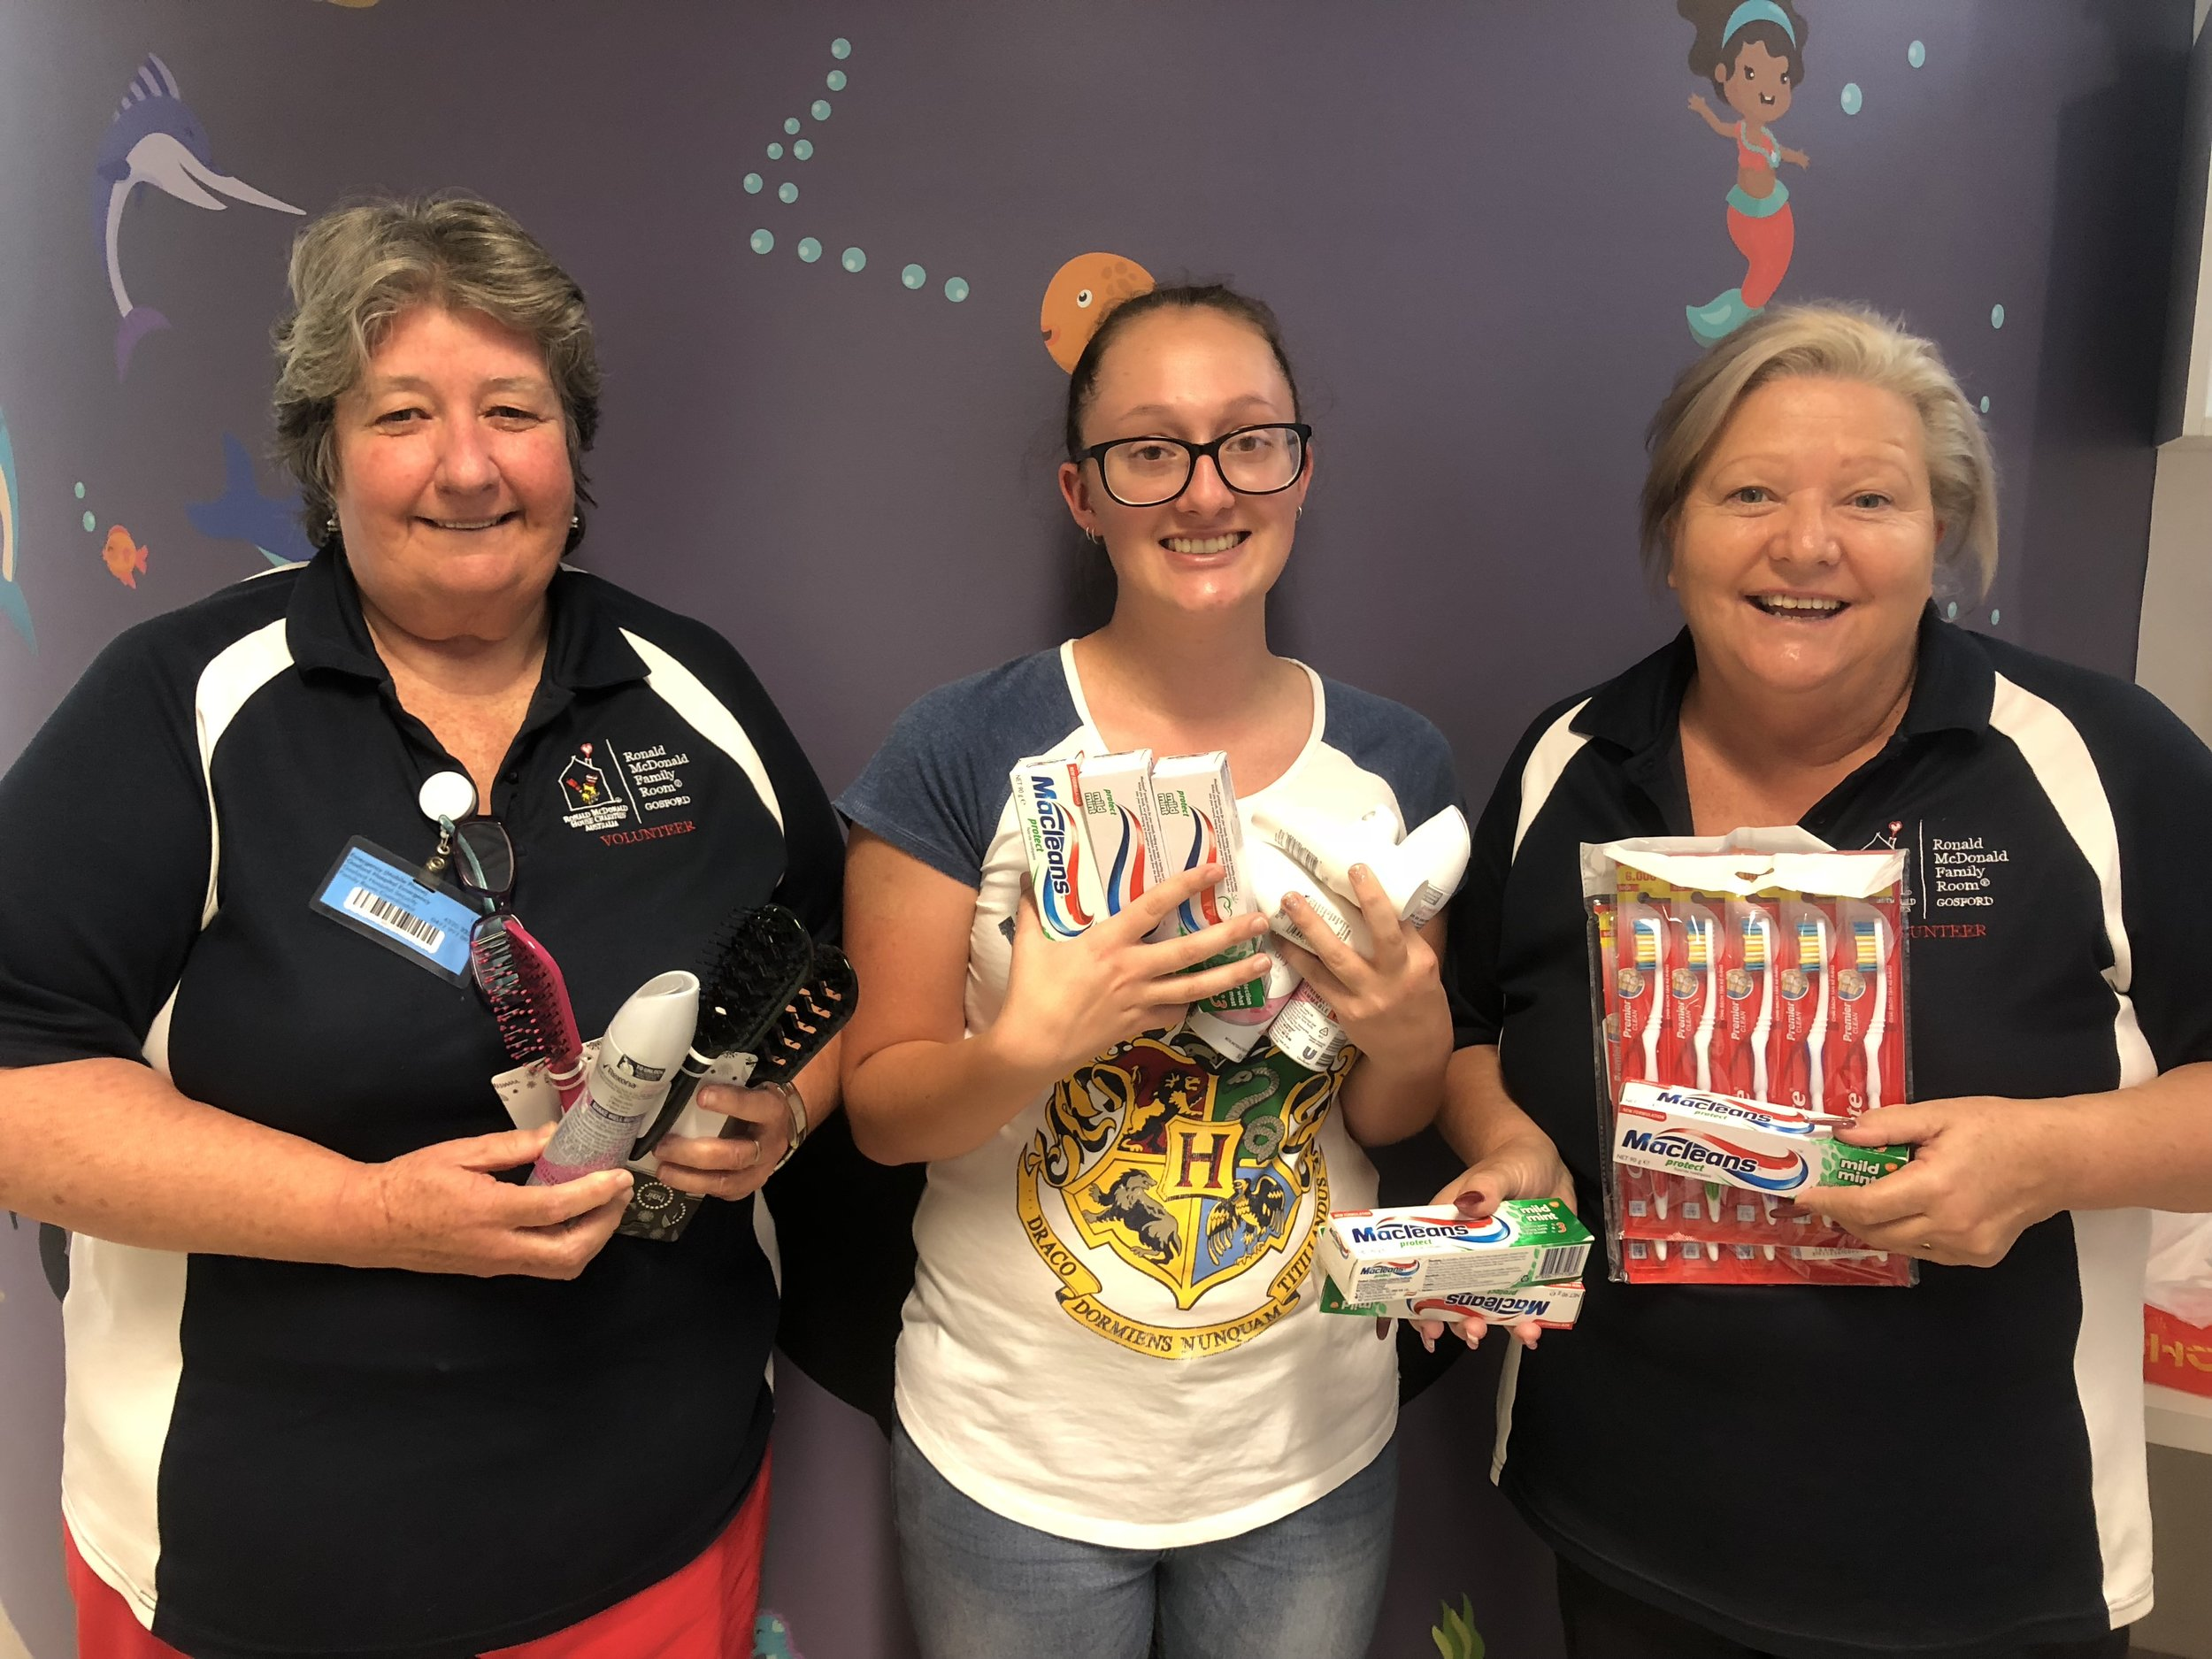 McDonalds Crew at Lakehaven saw our social media post asking for toiletries at the Ronald McDonald Family Room in Gosford. Within minutes Tegan had messaged through asking what the top items and most needed items we needed where. The next day she made the trek down to the Family Room to drop those much needed supplies off! Thanks so much.